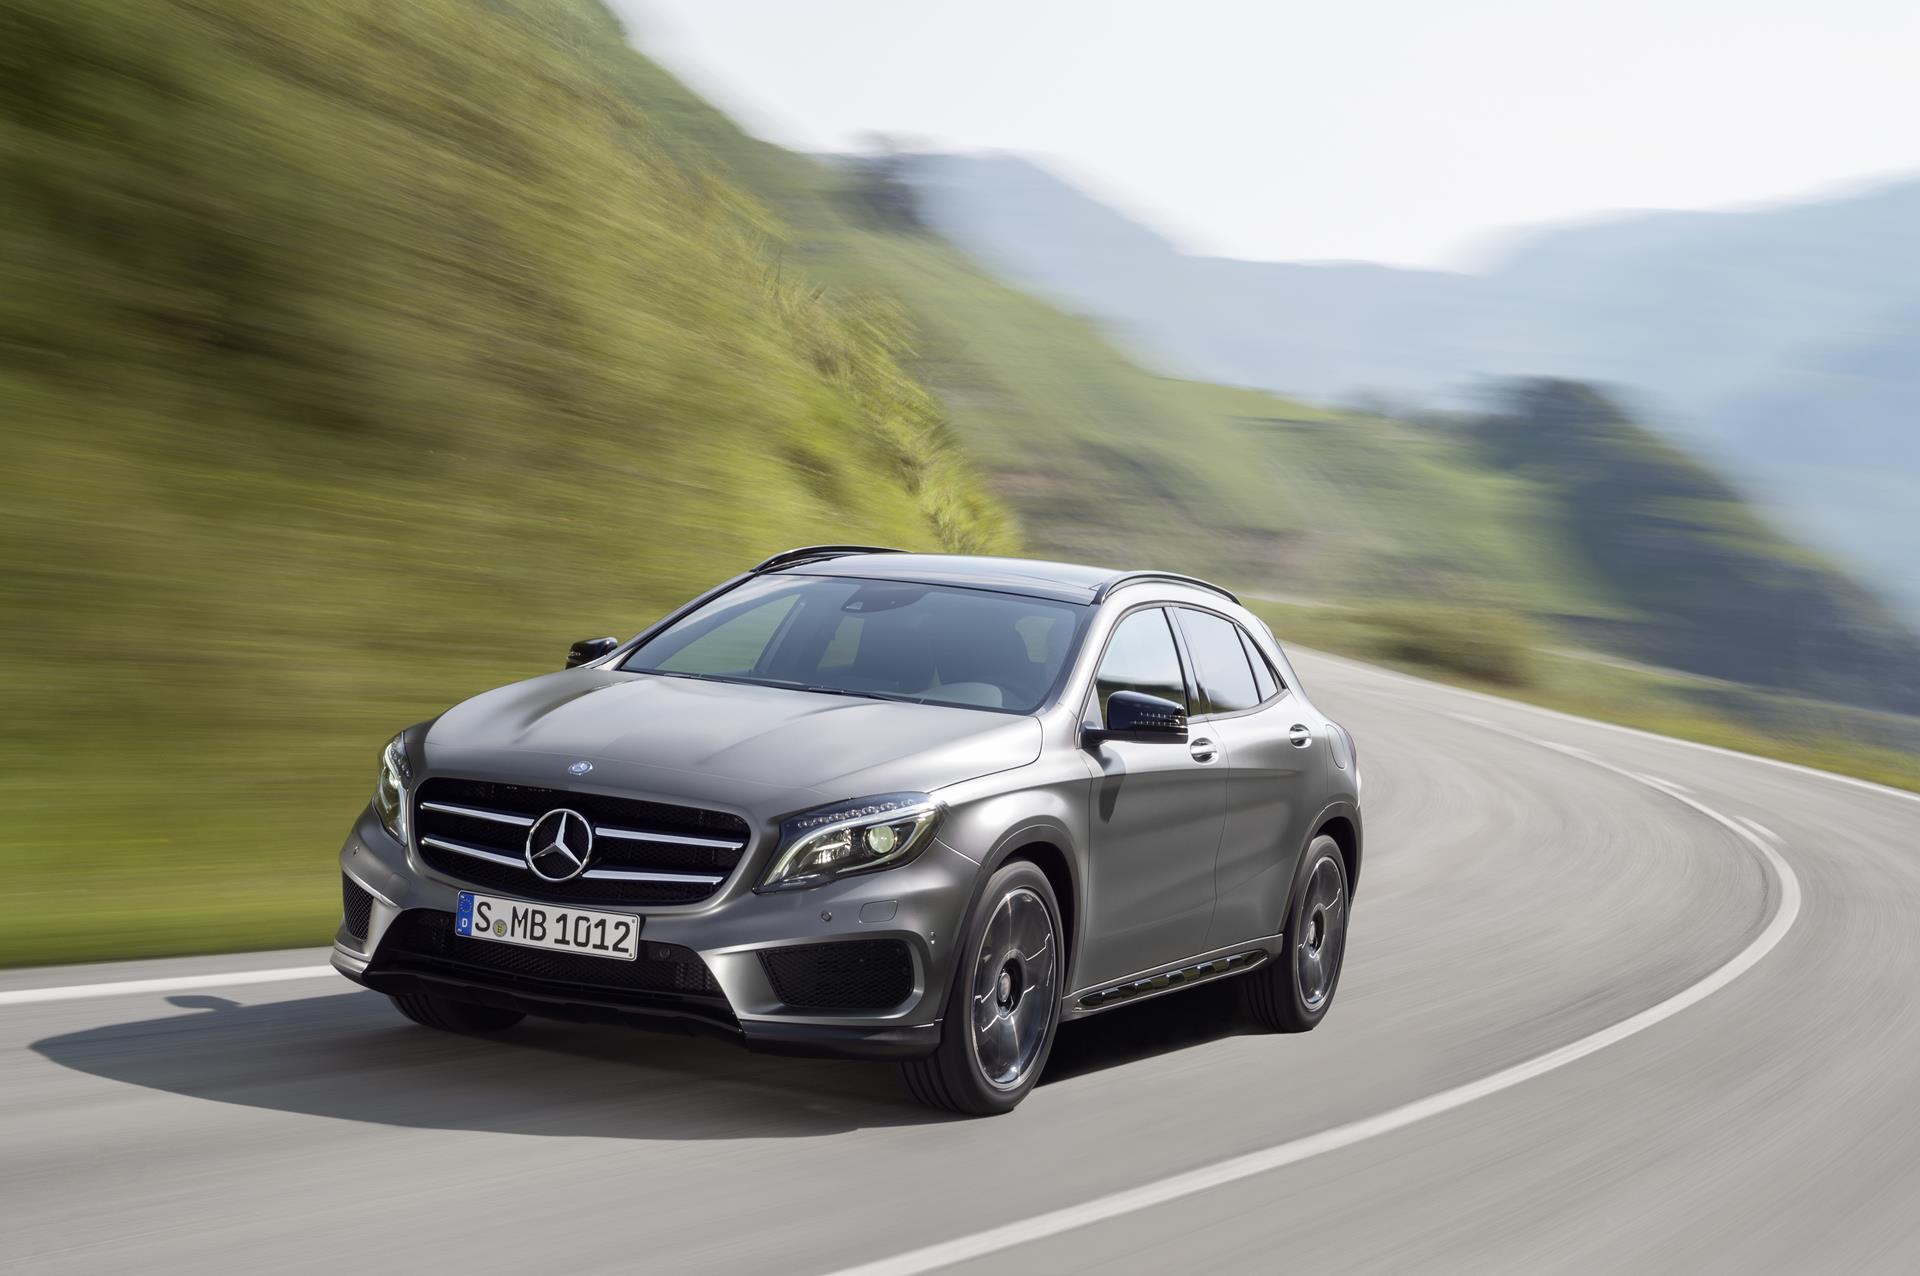 2016 mercedes benz gla class news and information for Mercedes benz e class suv